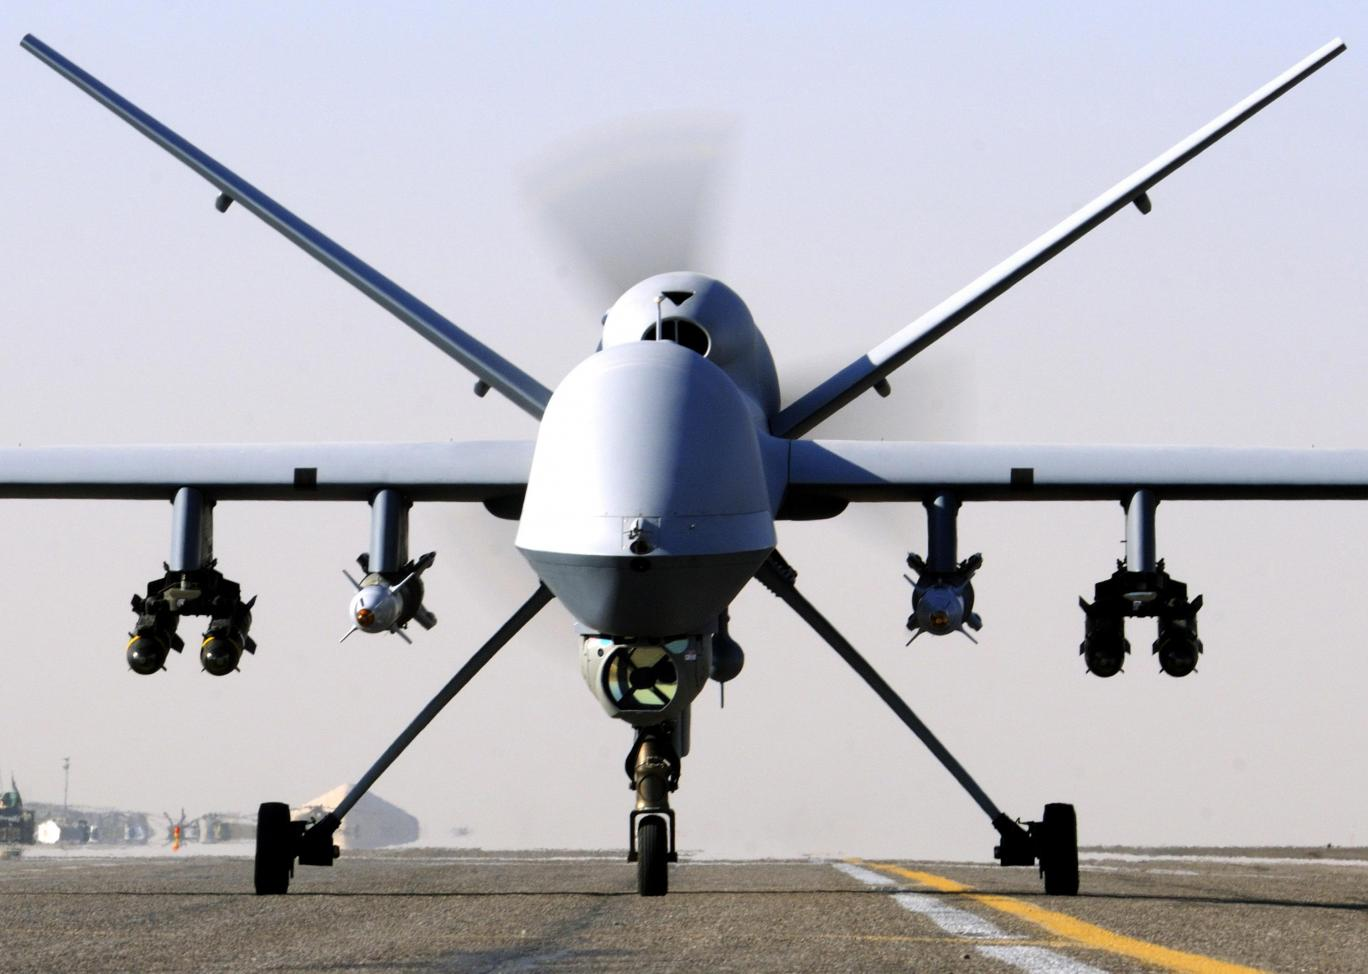 UK drone pilots to get medals for killing from 2,000 miles outside the combat zone